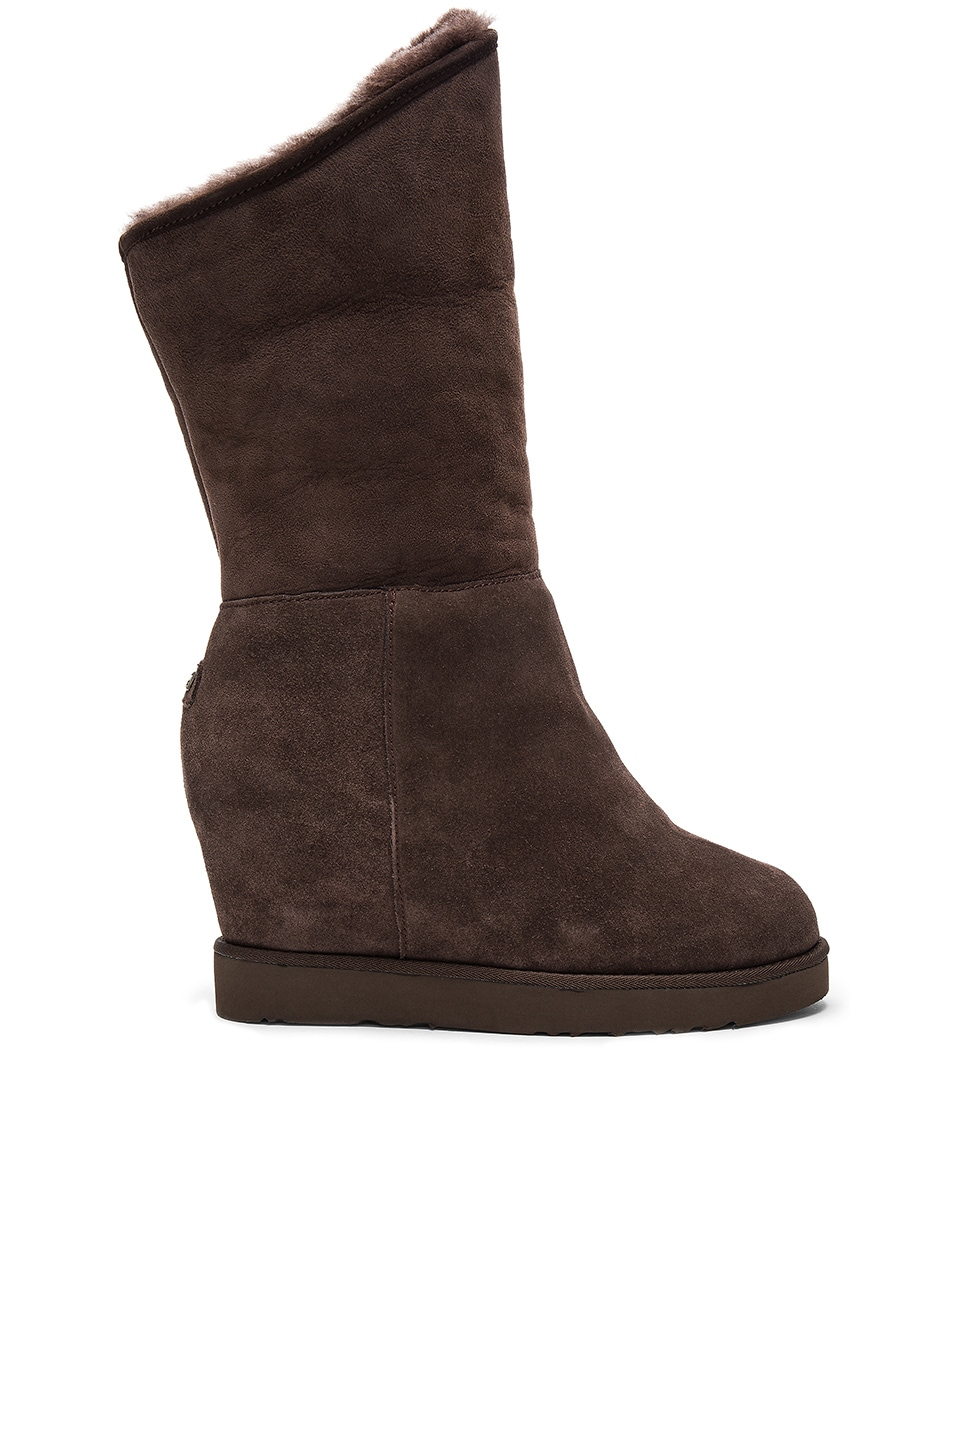 Photo of Cosy Shearling Lined Tall Wedge Boot by Australia Luxe Collective shoes